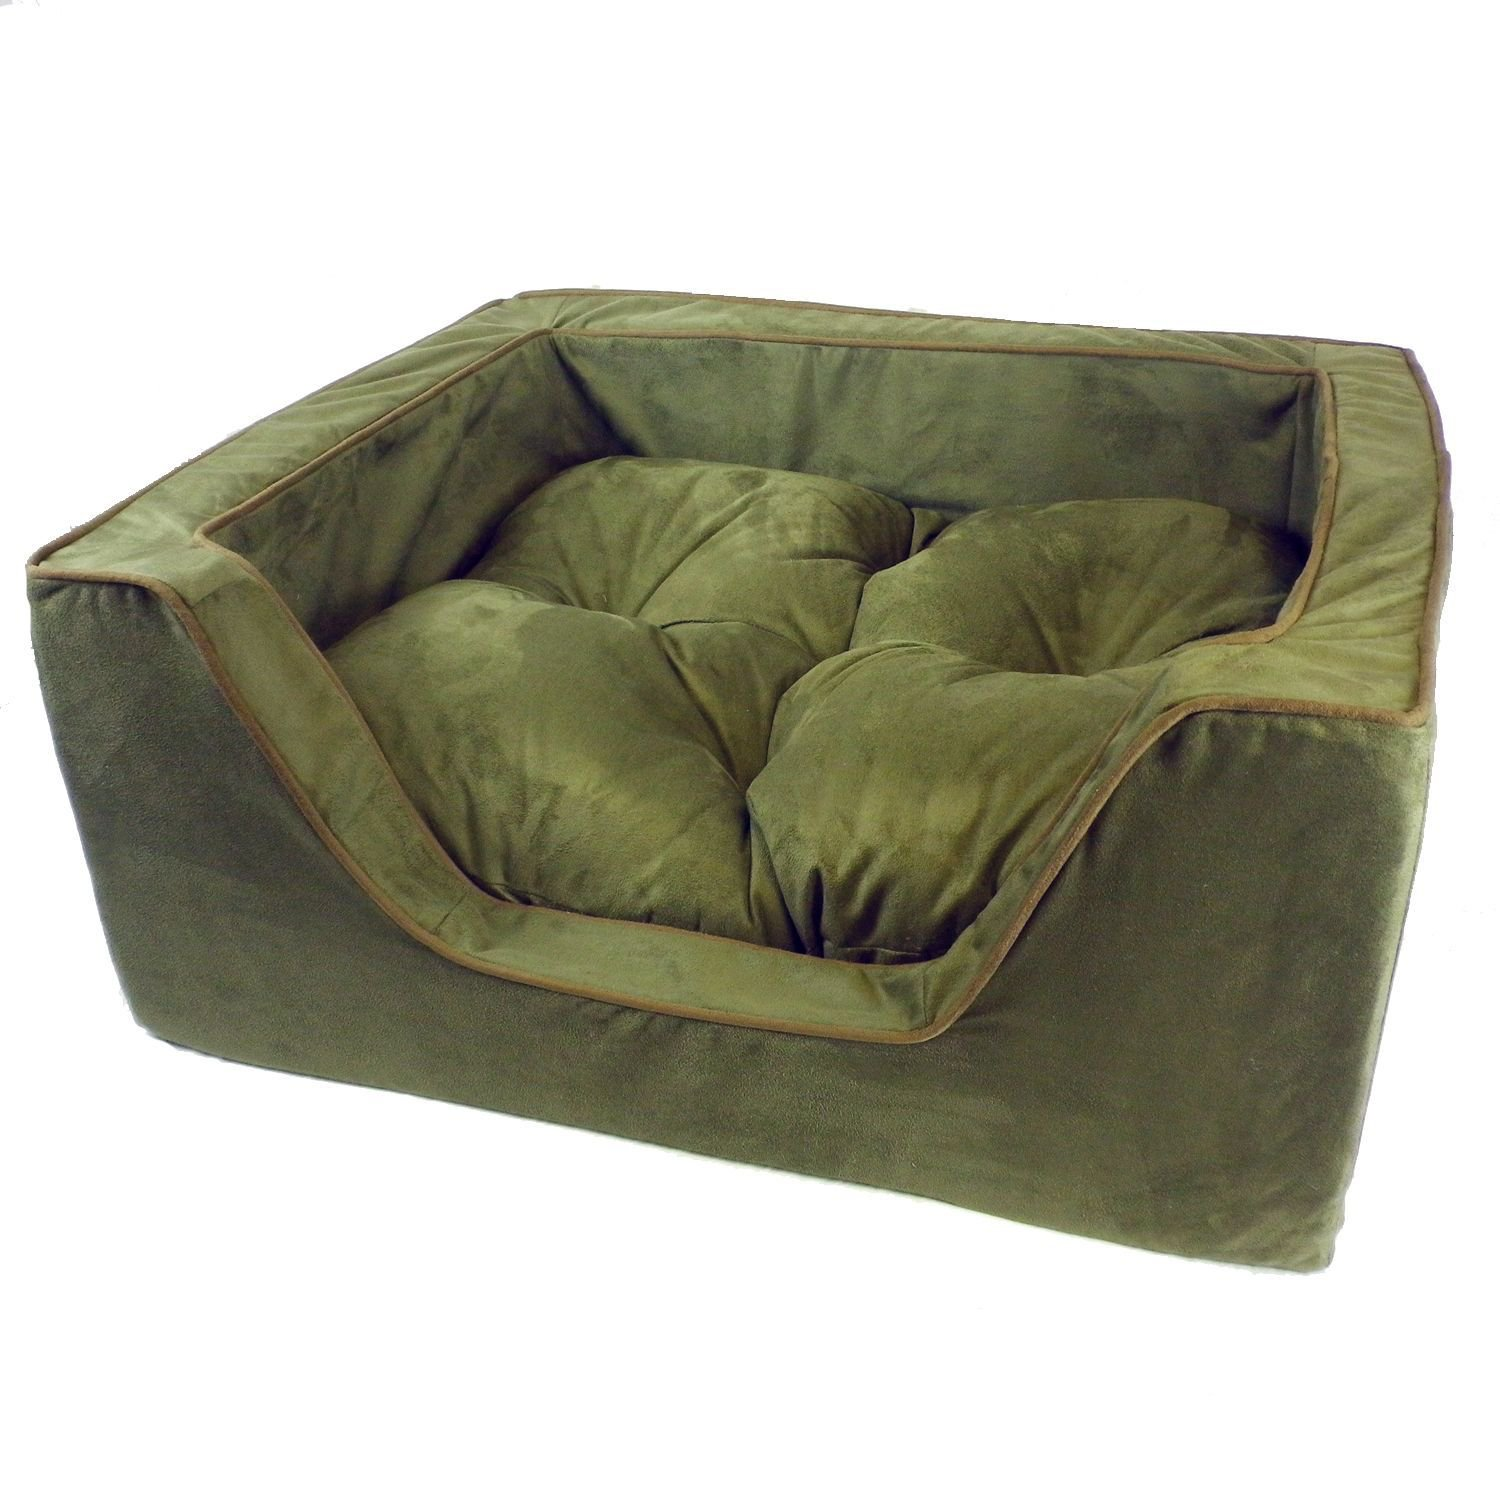 Snoozer Luxury Square Bed in Olive with Coffee Cording 23 L x 19 W Medium Green  Brown